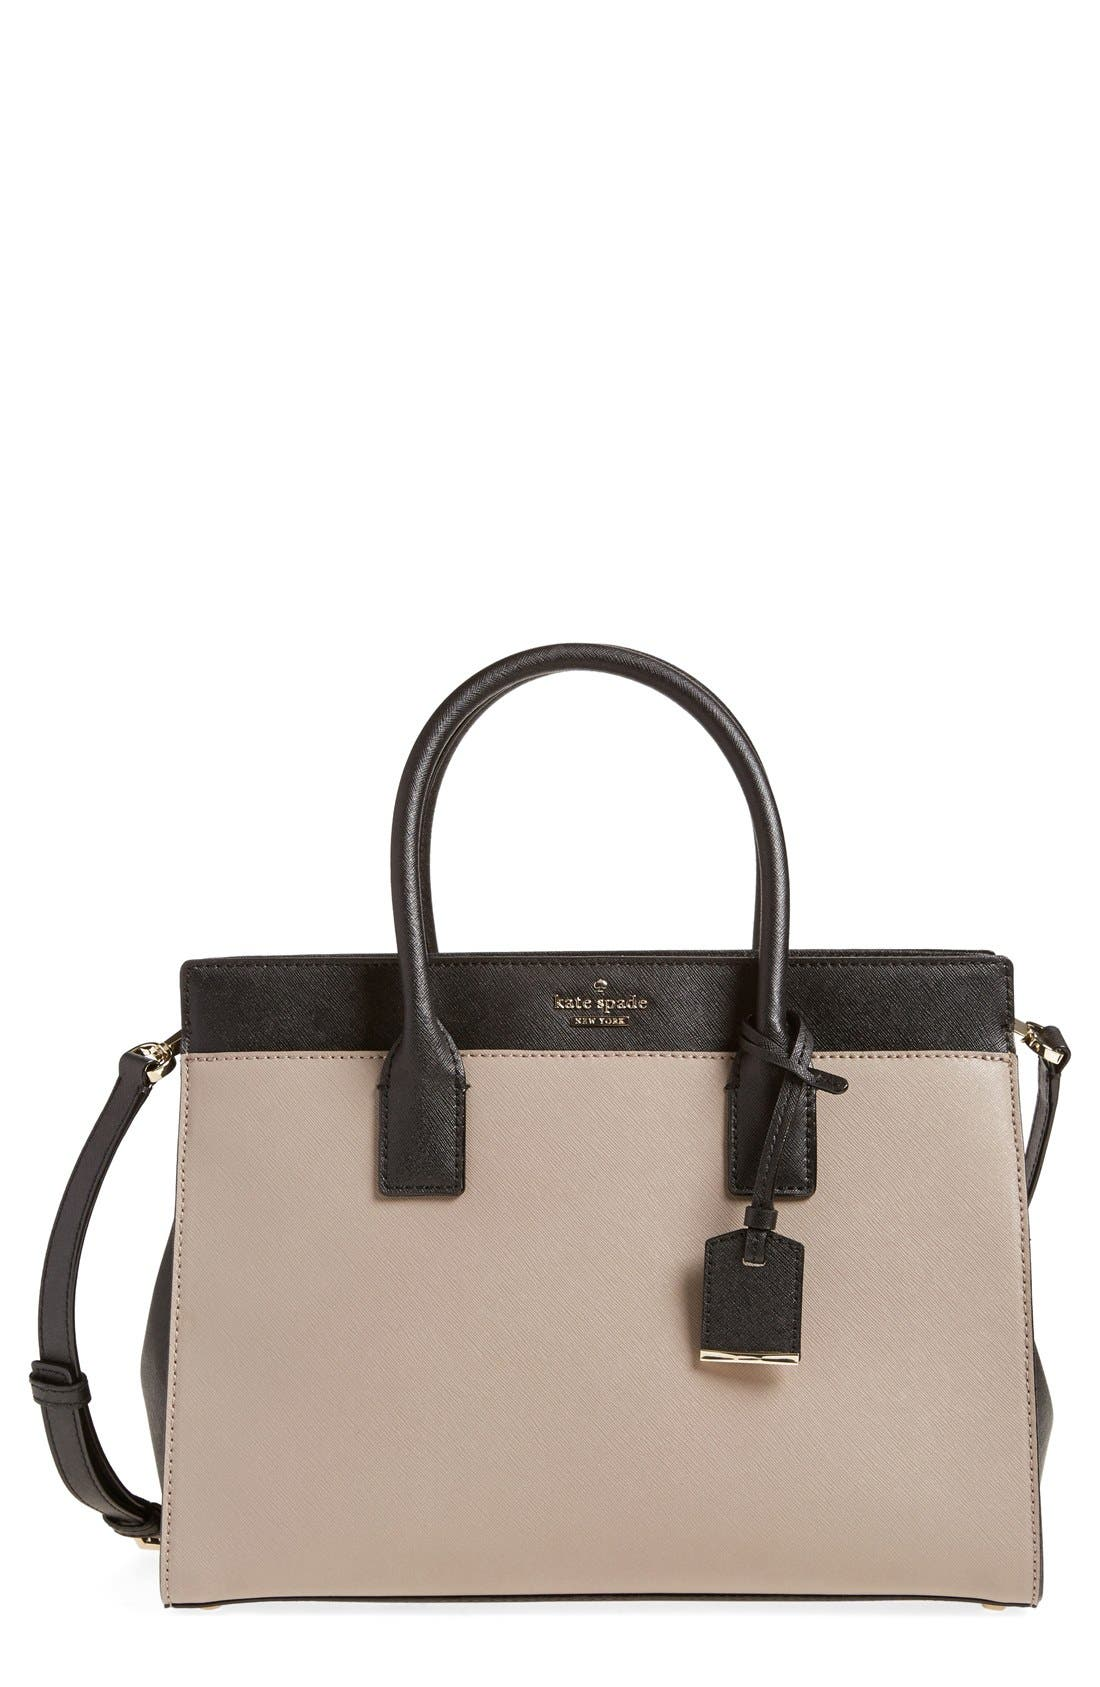 Main Image - kate spade new york 'cameron street - candace' satchel